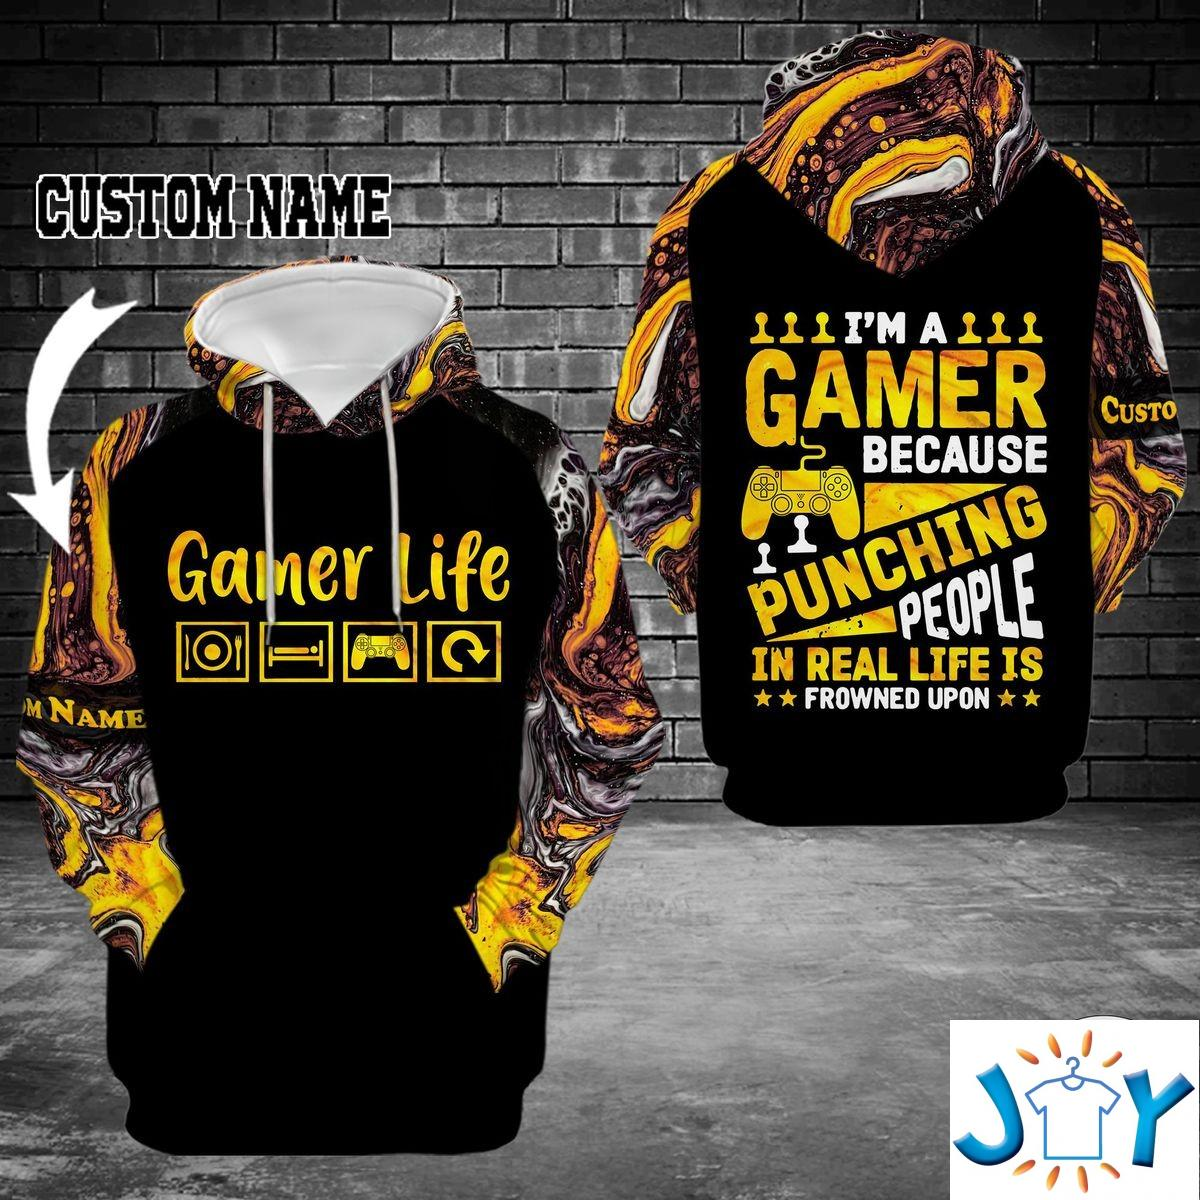 Personalized Gamer Life I'm A Gamer Because Punching People In Real Life Is Frowned Upon 3D Hoodie